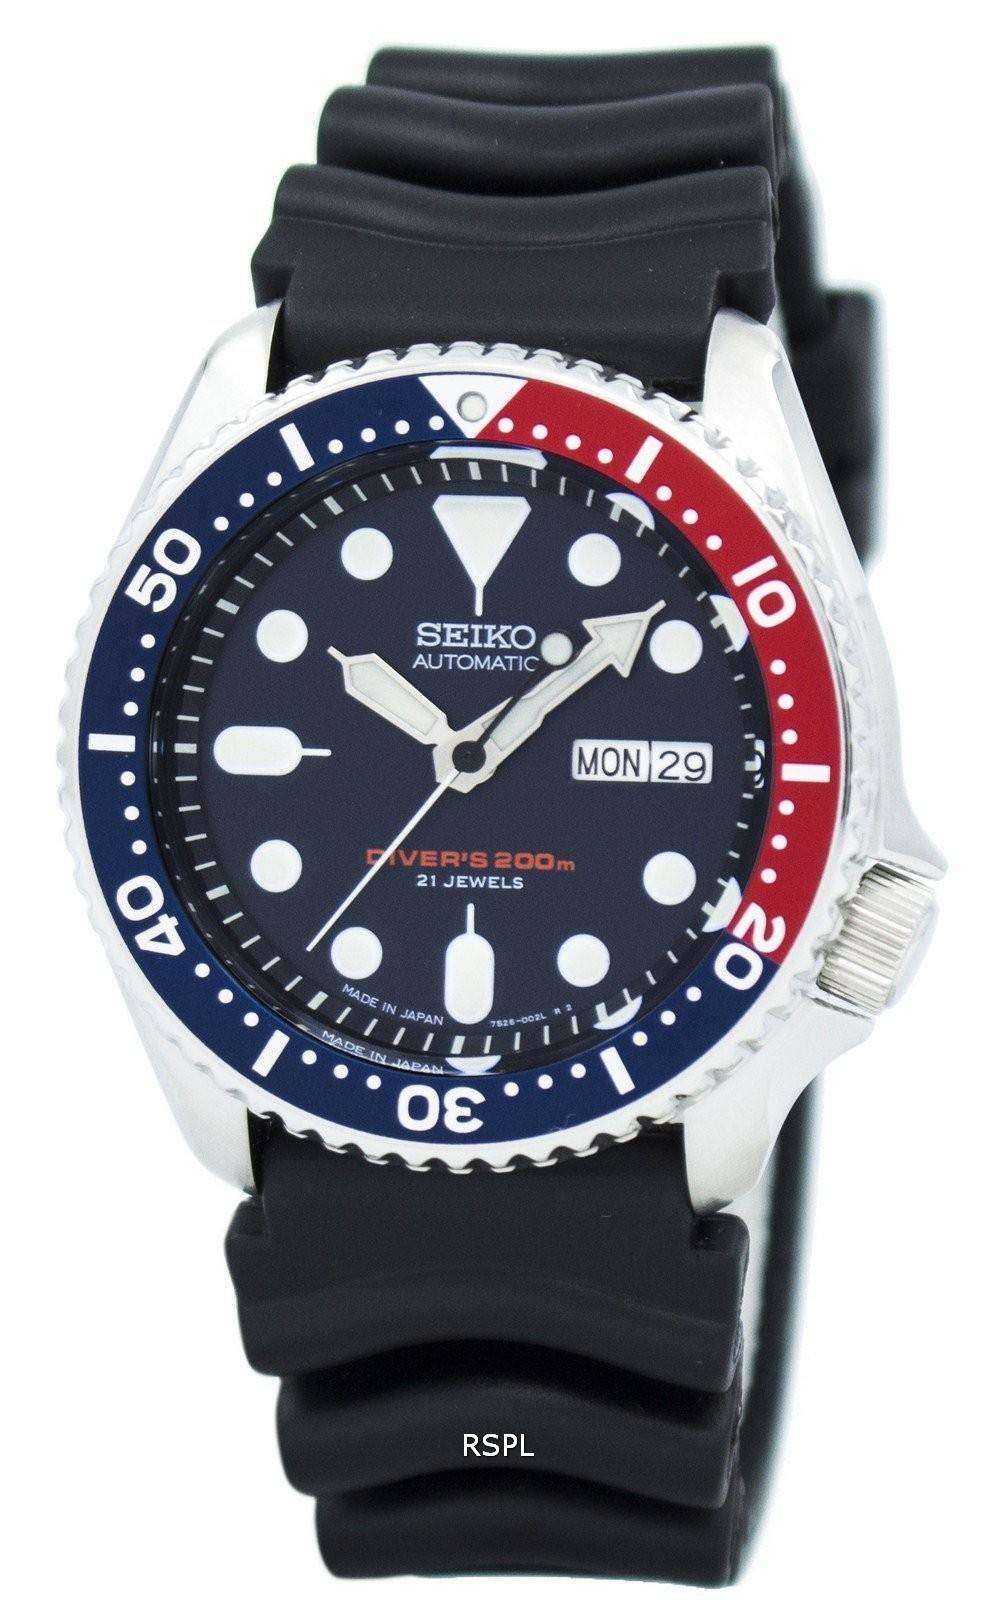 Seiko automatic divers 200m skx009j1 made in japan watch downunderwatches for Watches of japan